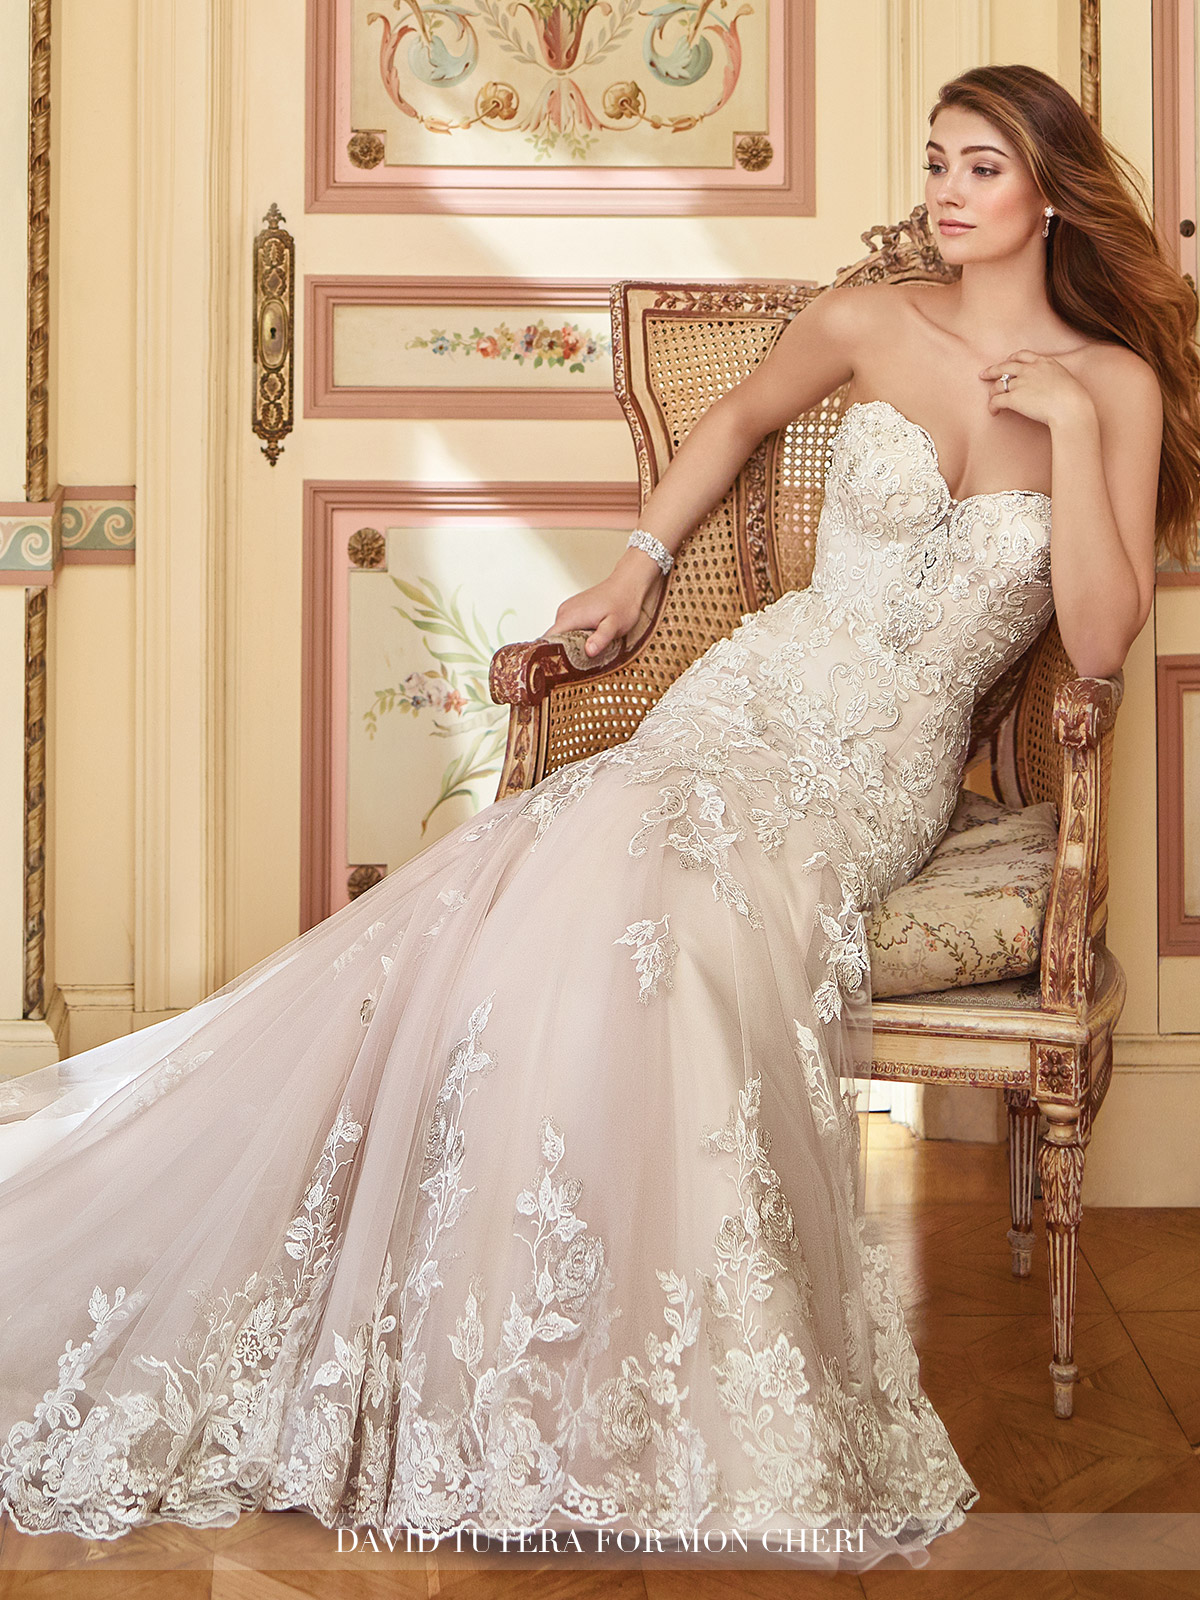 David Tutera Wedding Dresses 117284-2